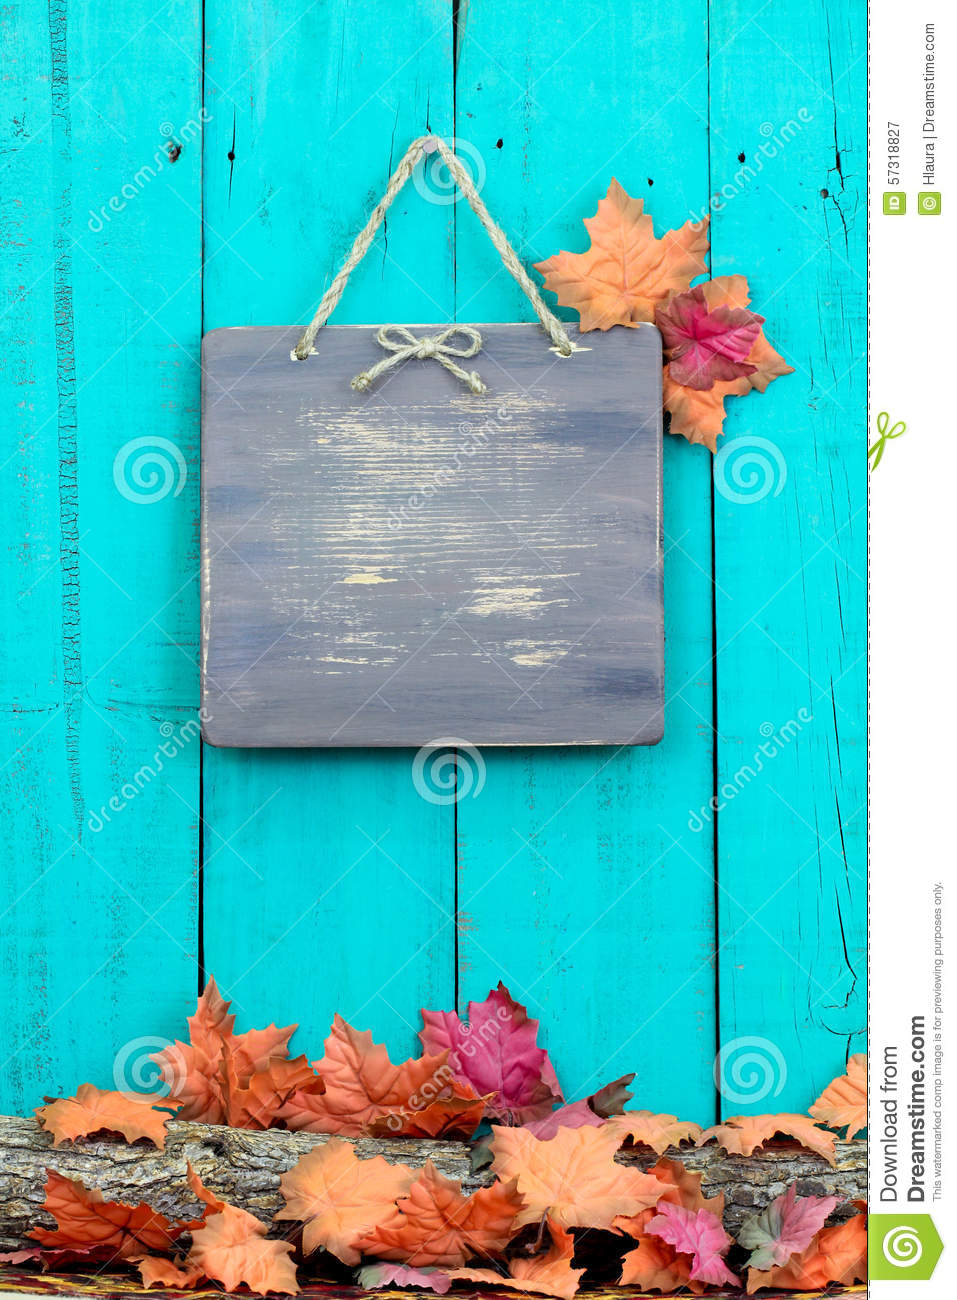 Fall Leaves Desktop Wallpaper Backgrouns Rustic Blank Sign Hanging On Fence By Autumn Decor Border